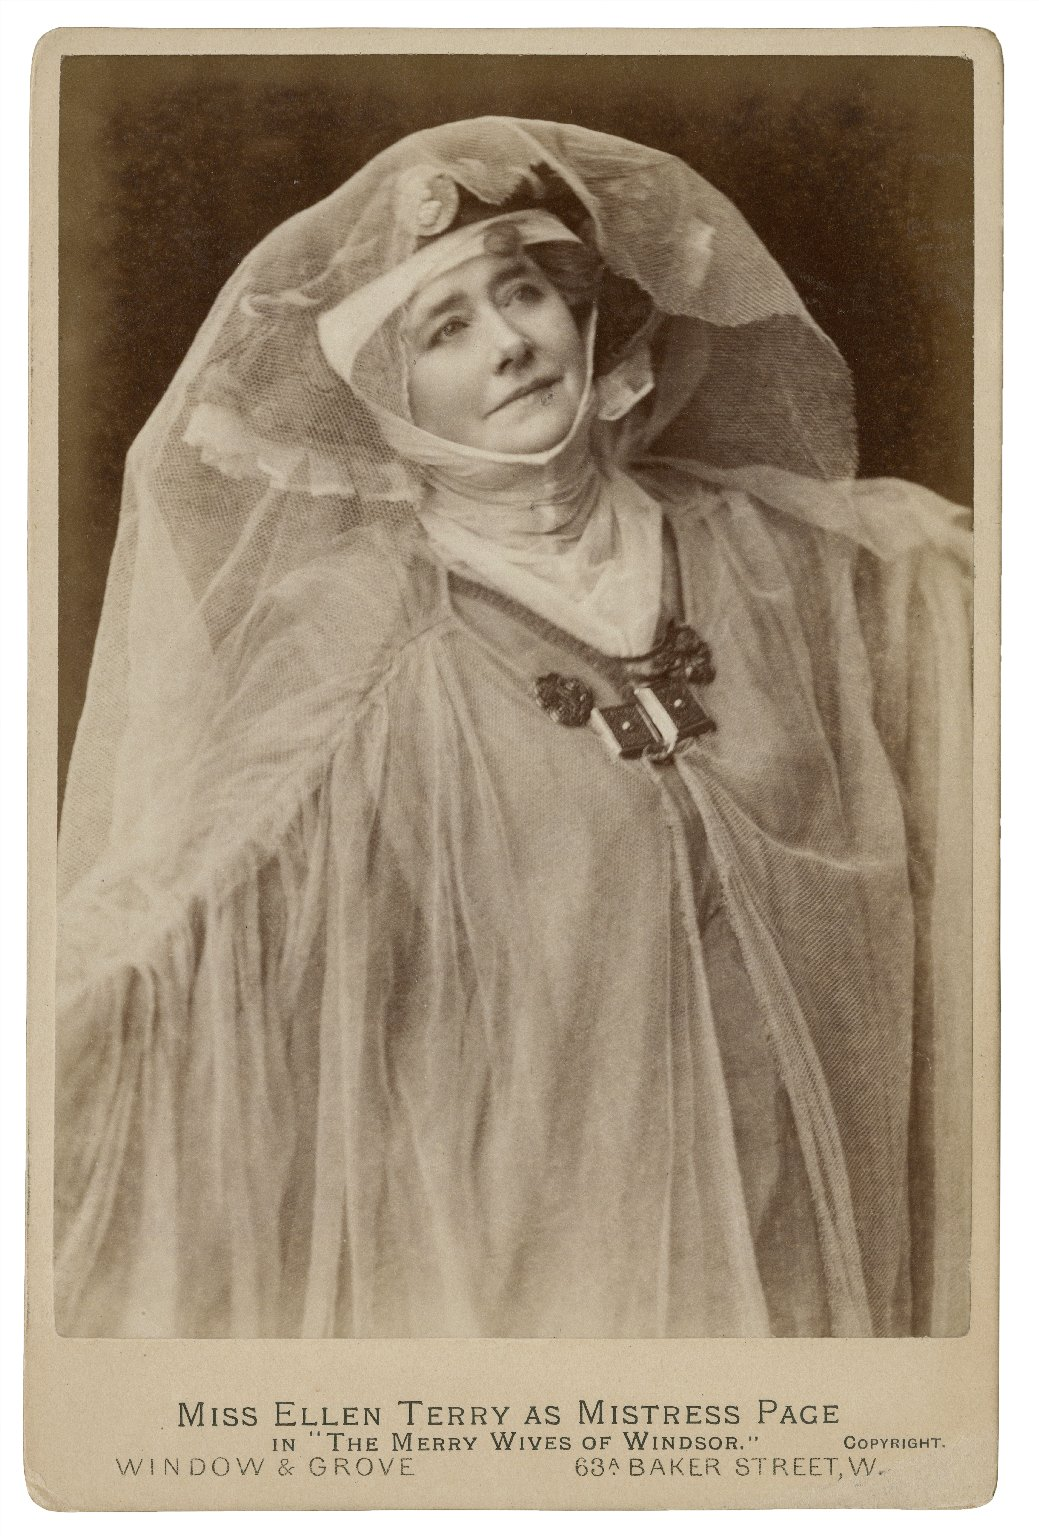 """Miss Ellen Terry as Mistress Page in """"The Merry Wives of Windsor"""" [graphic] / Window & Grove."""